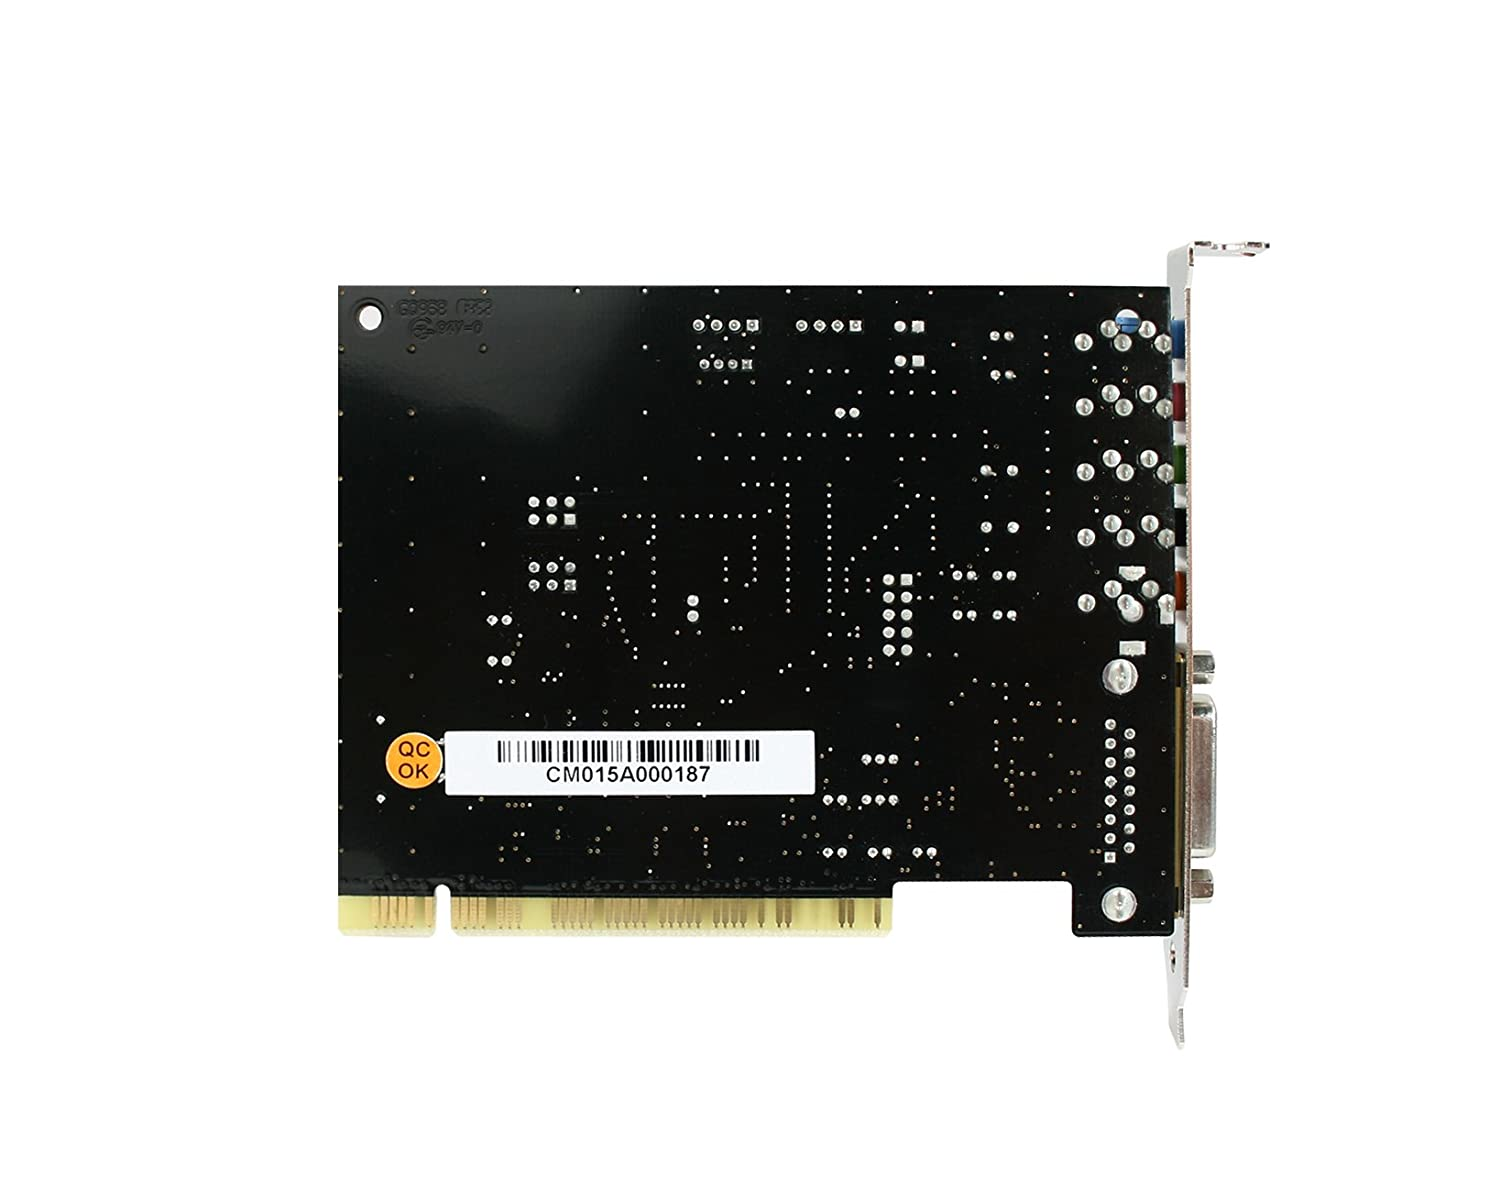 DIAMOND SC3000 SOUND CARD WINDOWS 7 X64 TREIBER